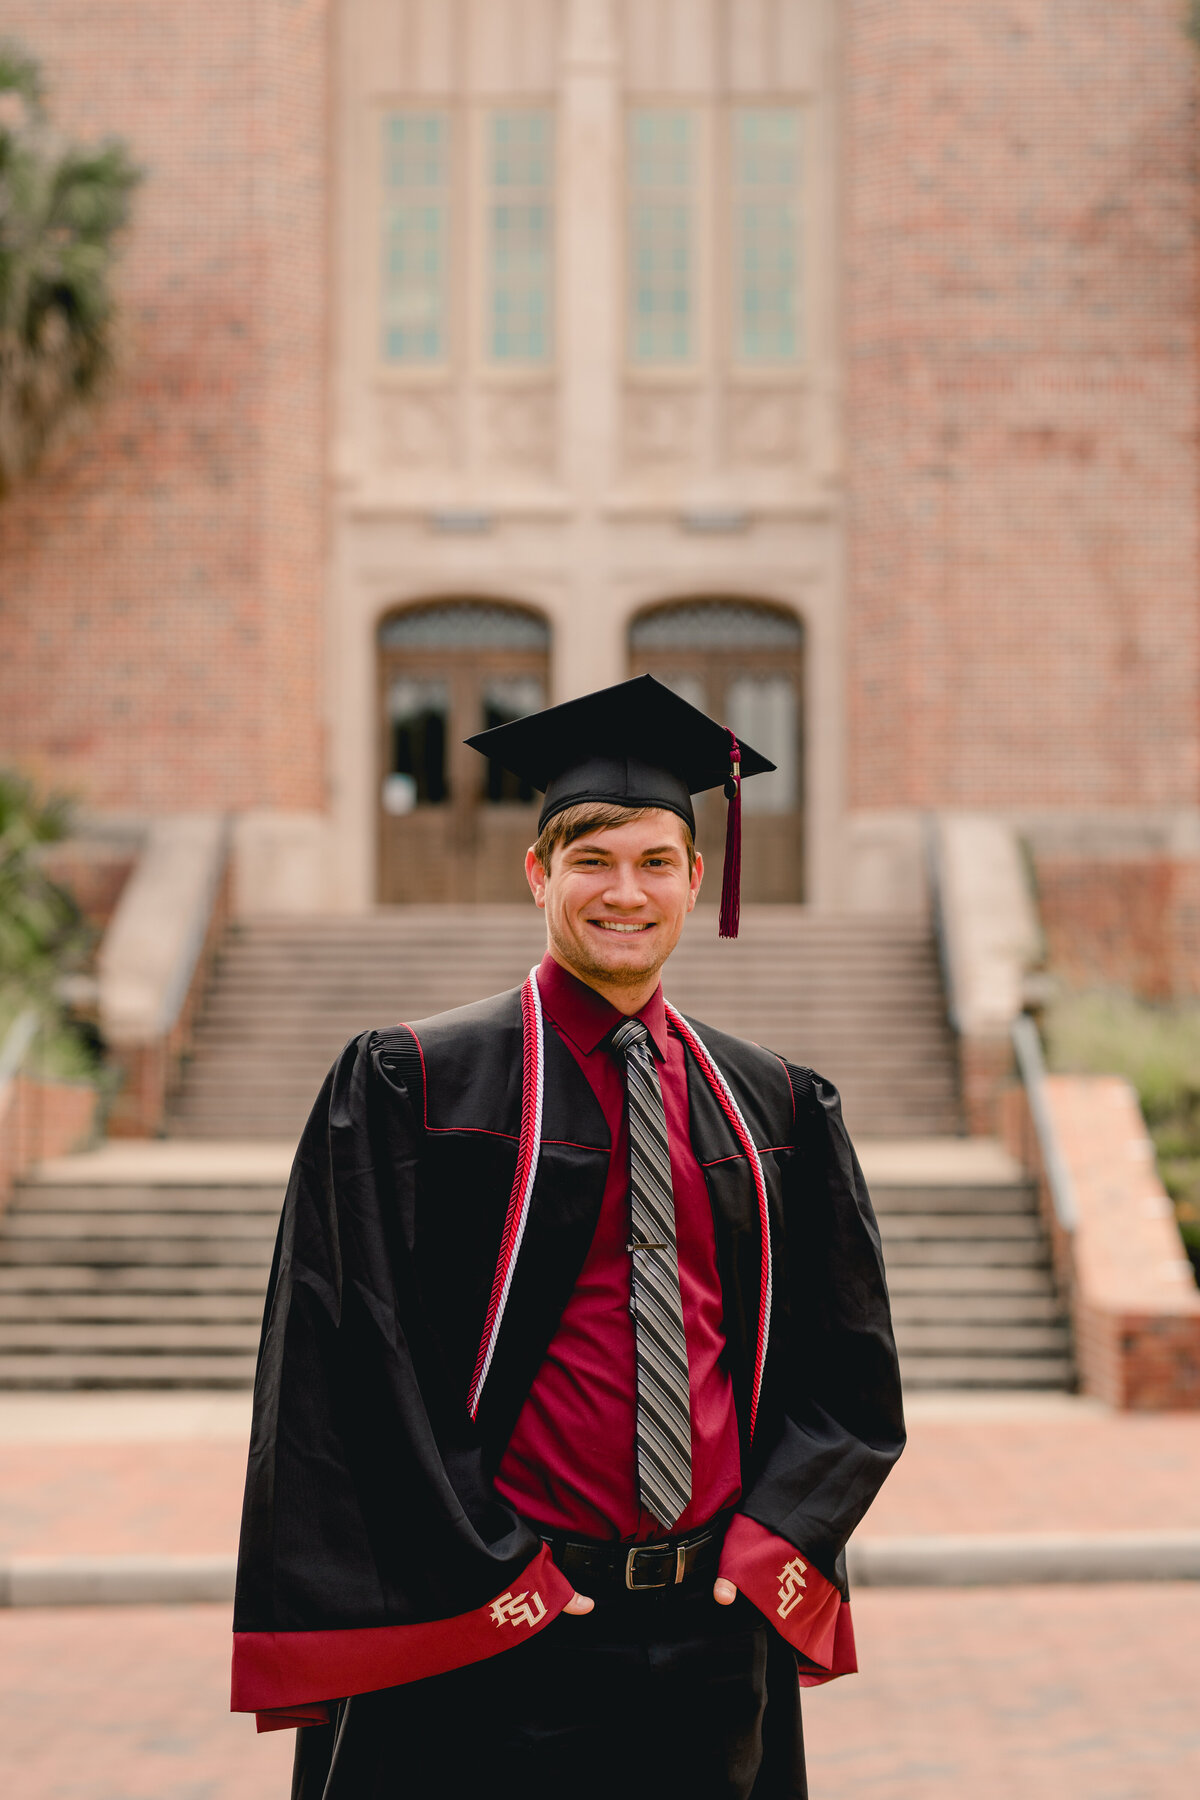 Professional FSU graduation photographer